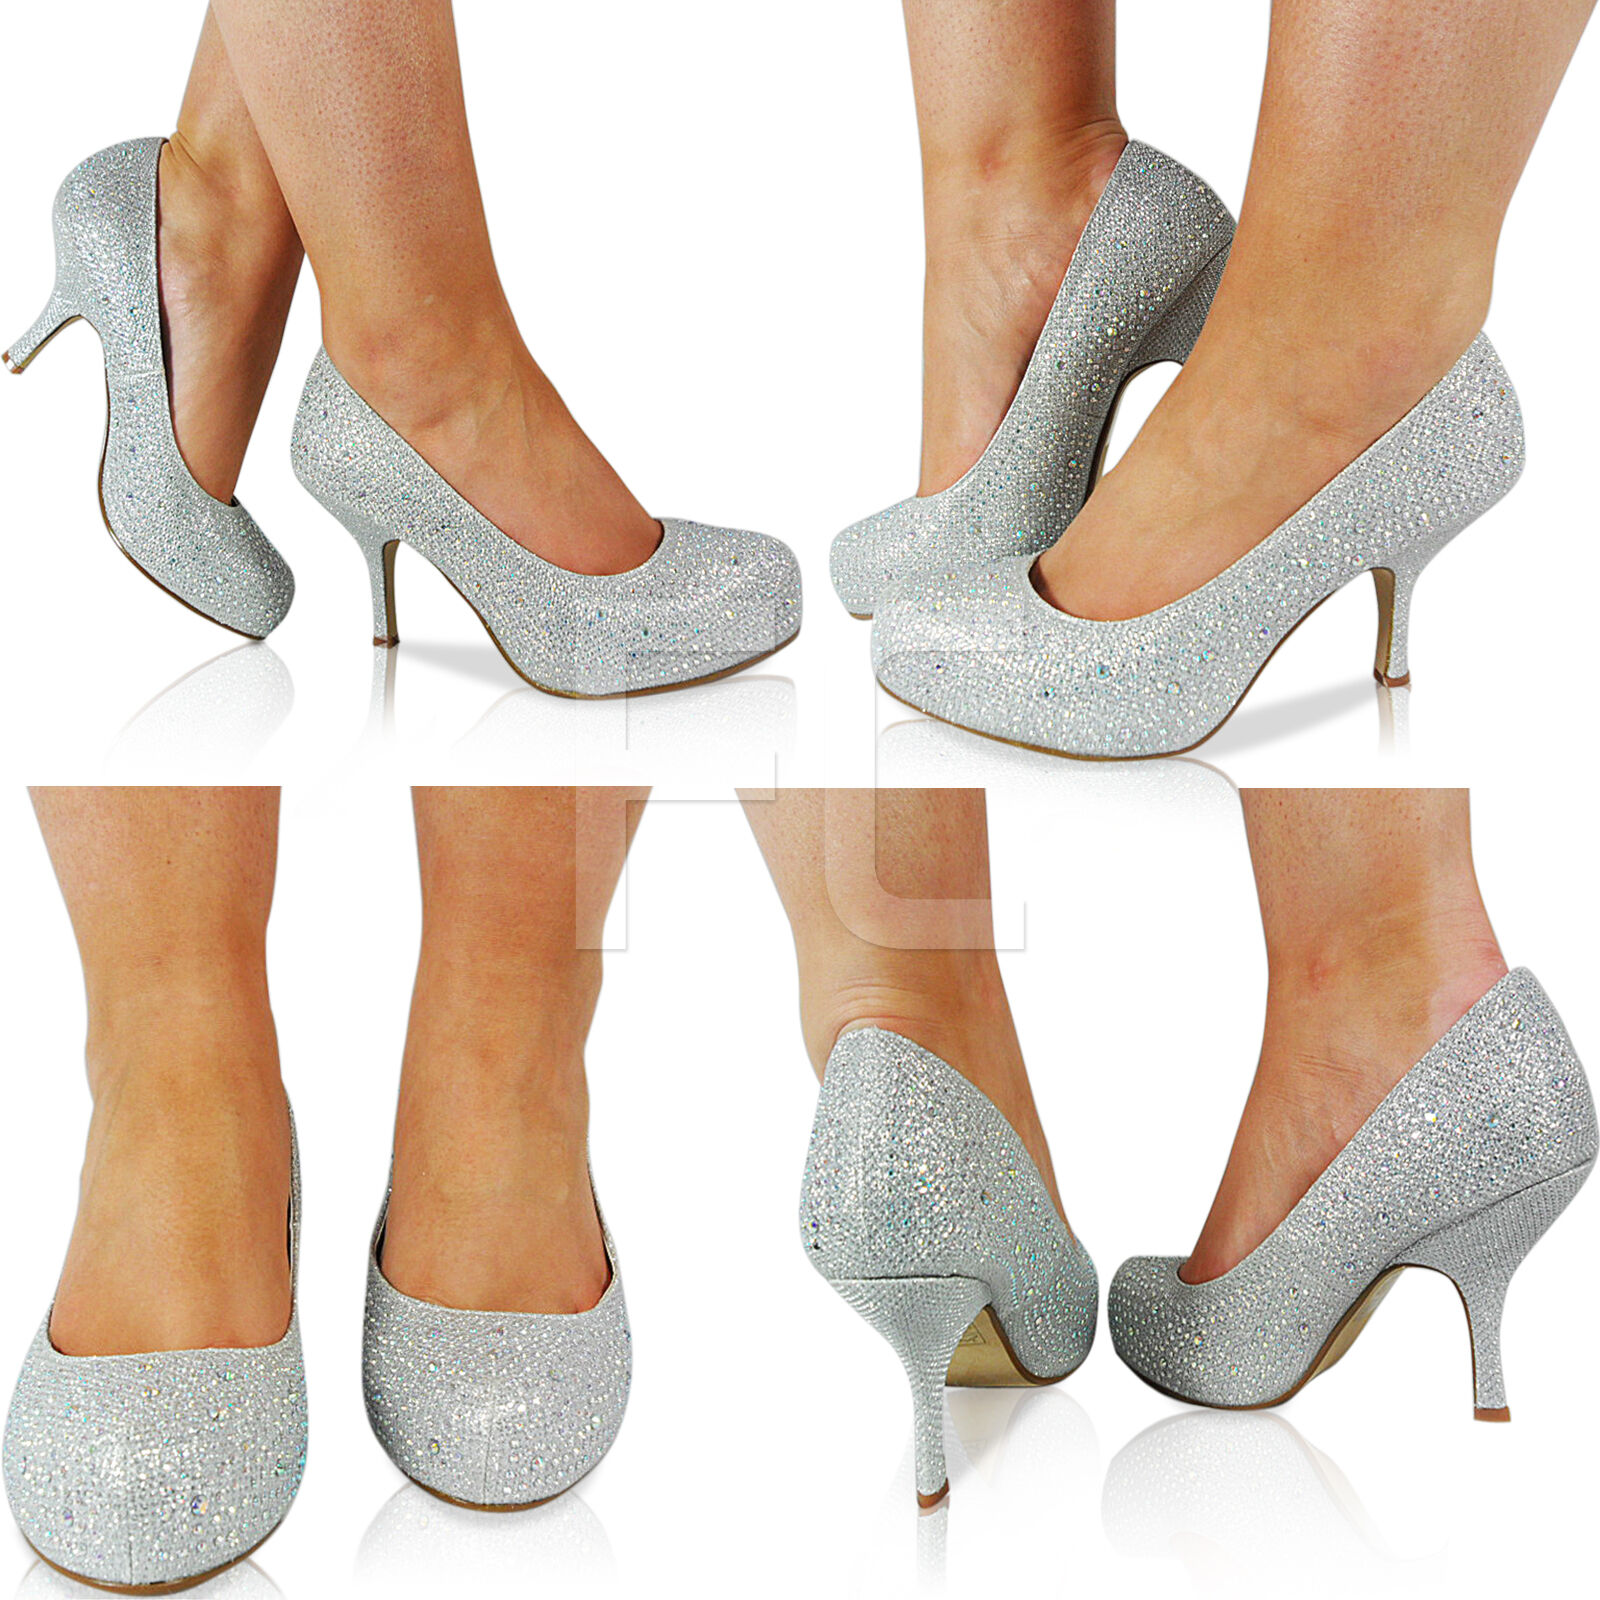 NEW WOMENS LADIES LOW HEEL WEDDING FORMAL BRIDAL PROM PARTY COURT SHOES SIZE